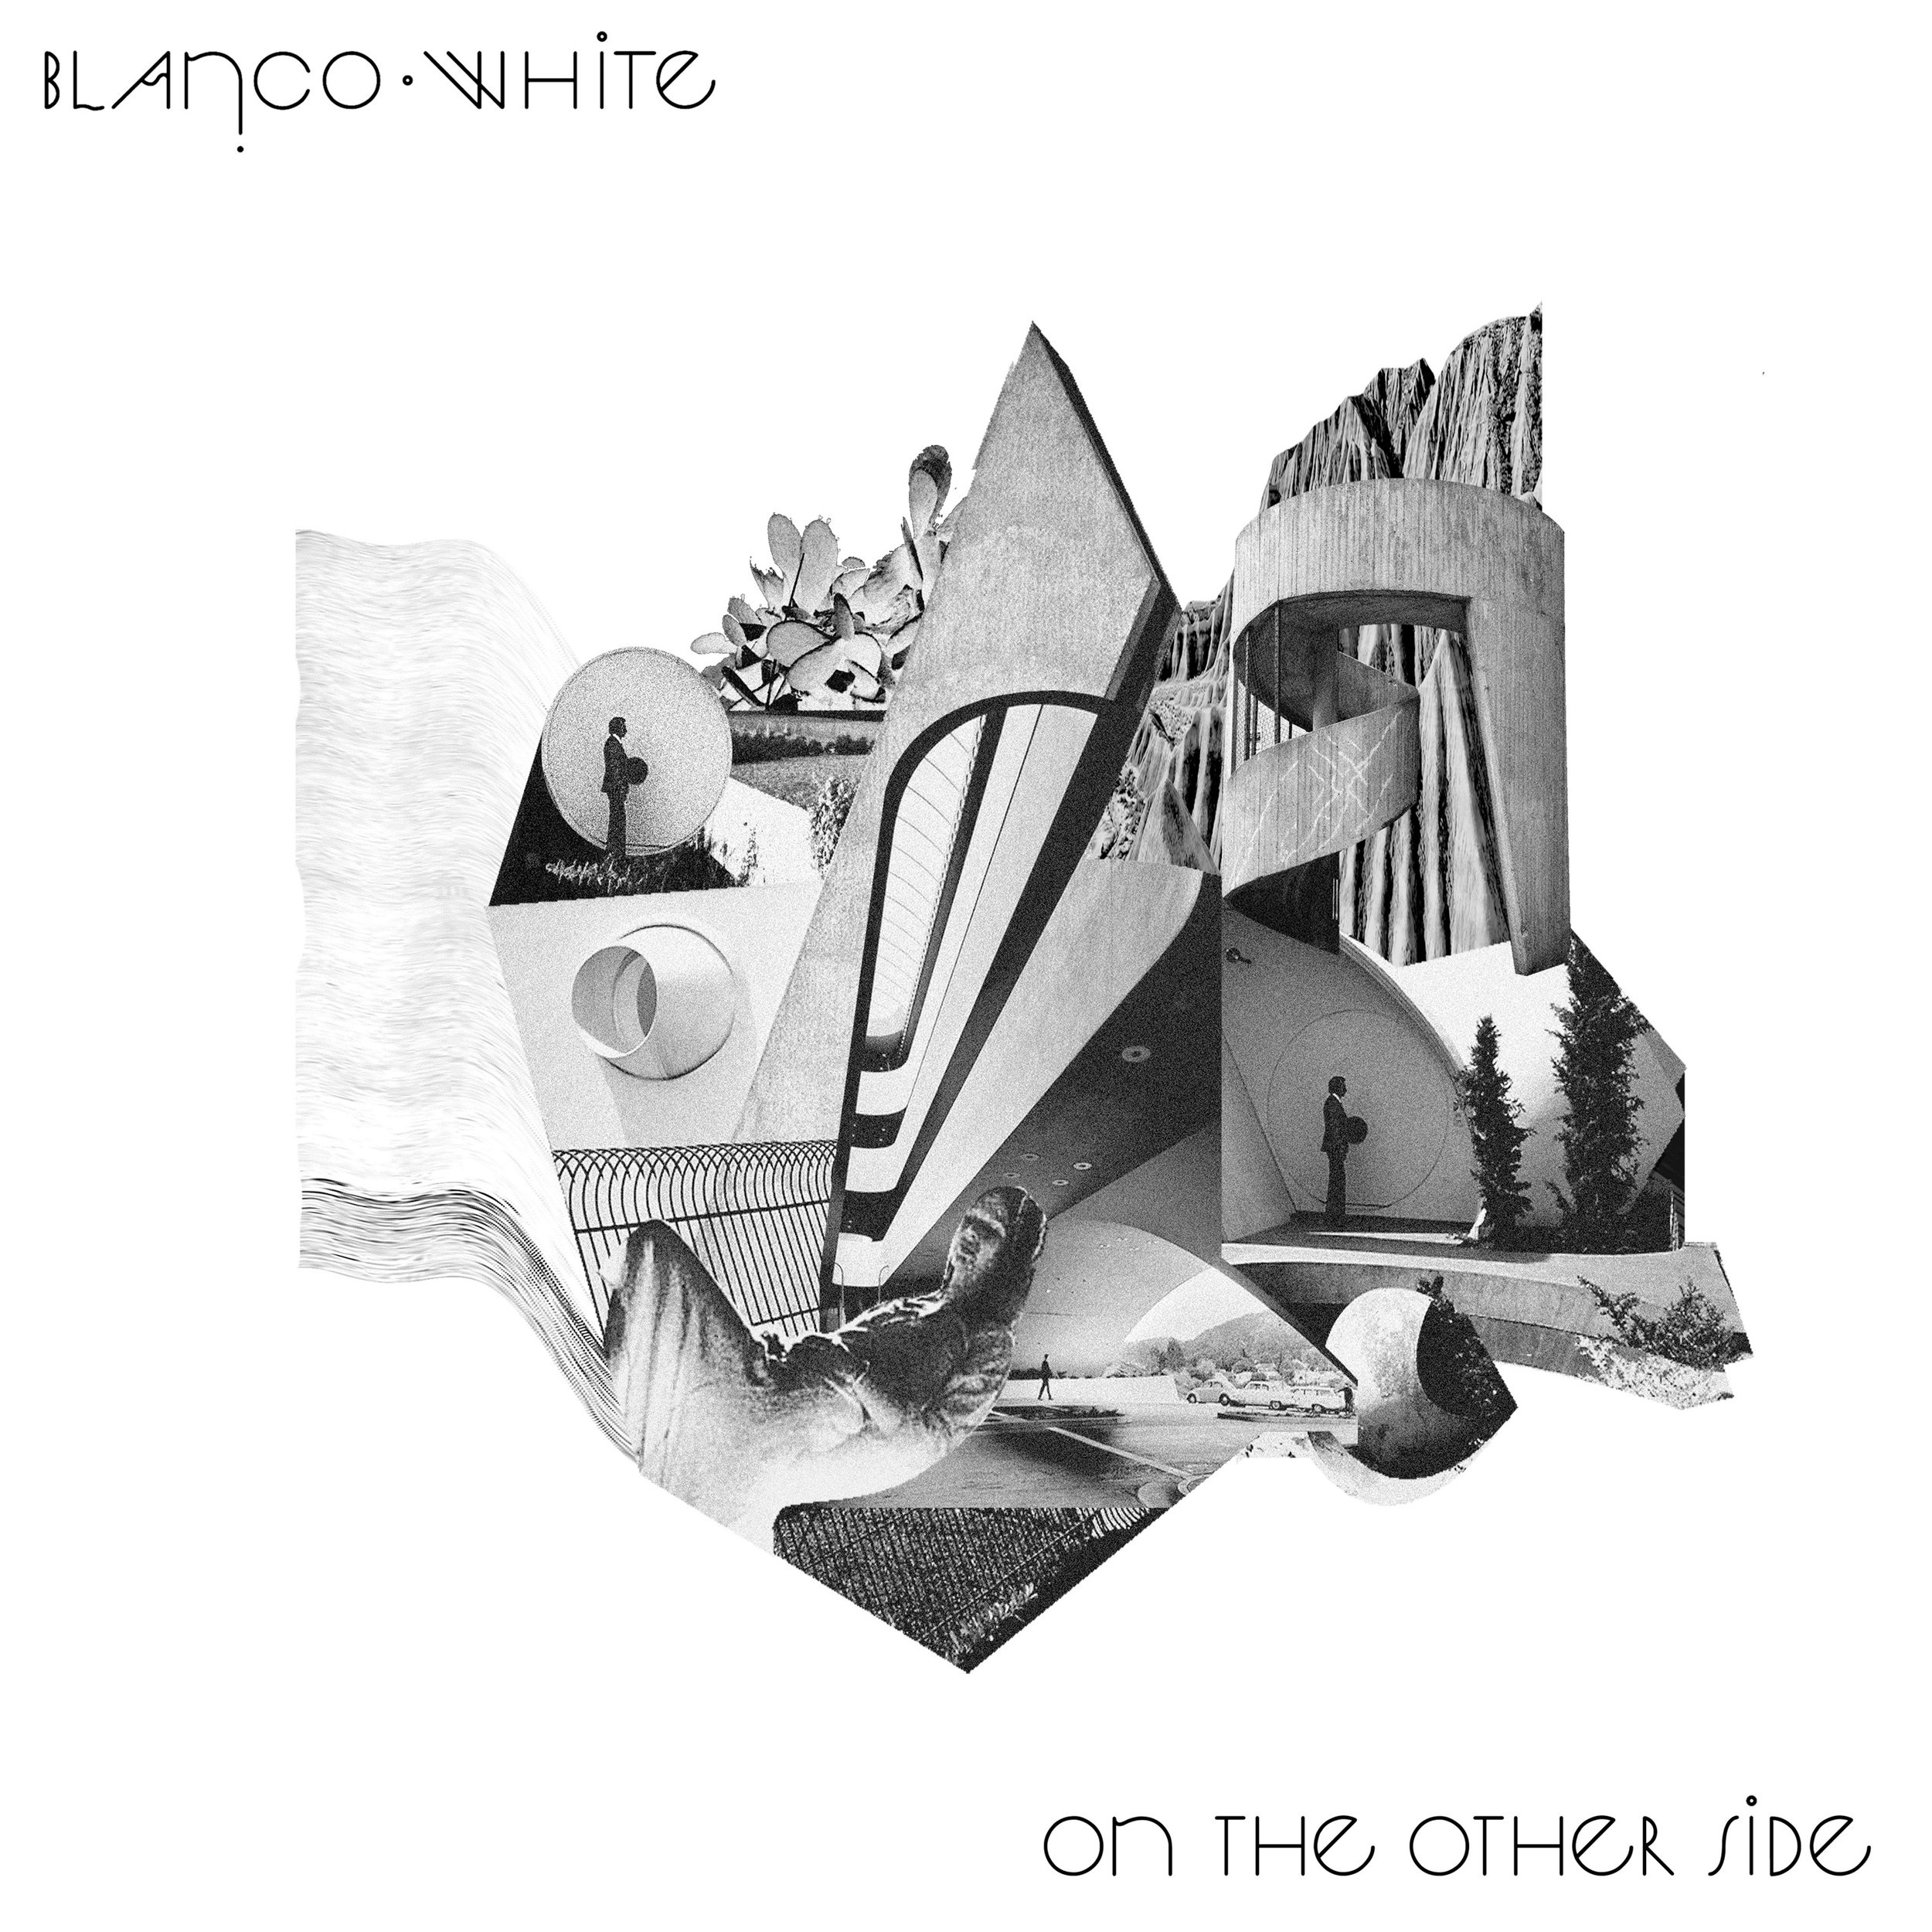 BLANCO WHITE - ON THE OTHER SIDE